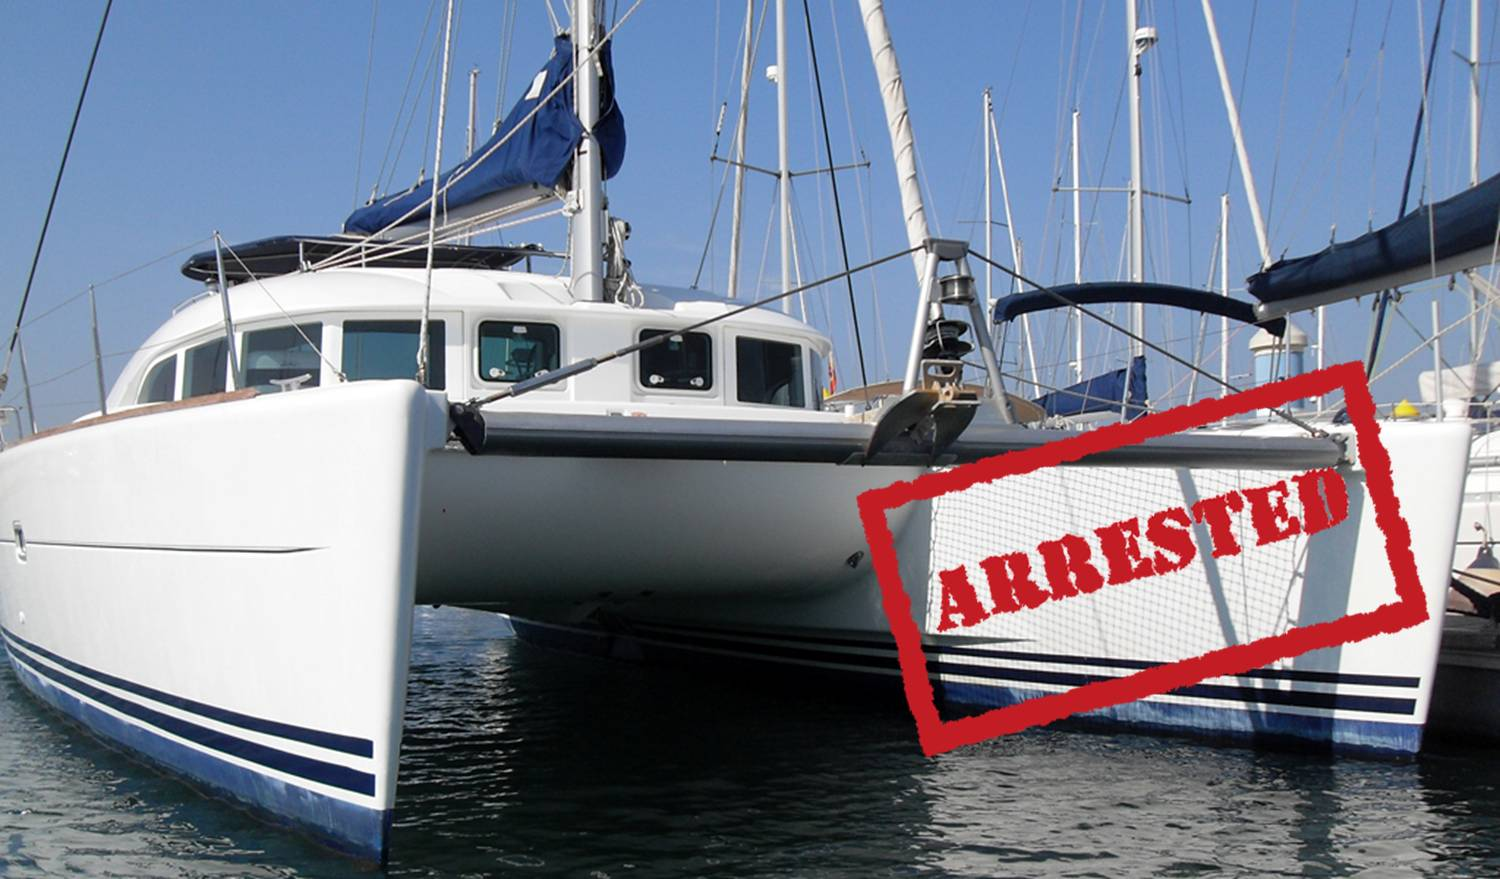 Yacht Arrest in Spain